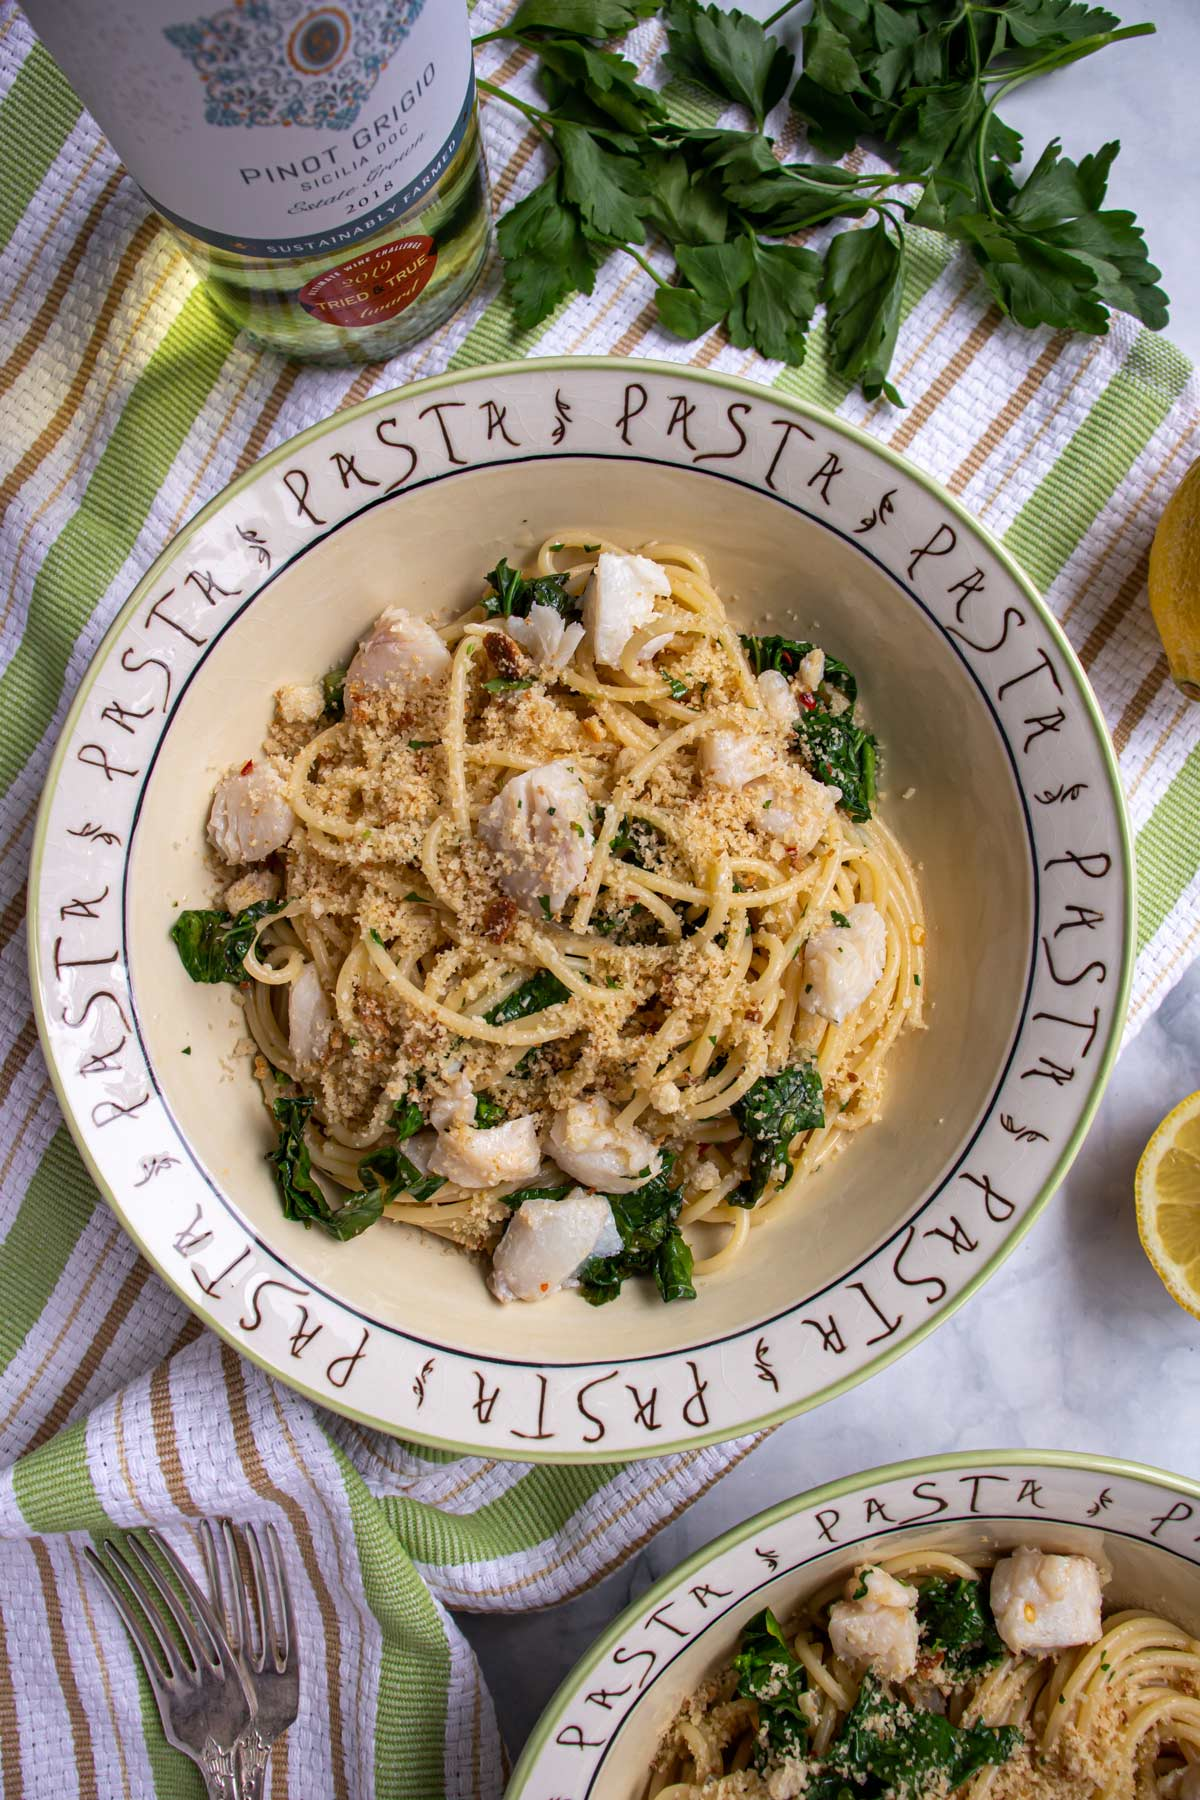 A bowl of spaghetti with broccoli rabe, small pieces of cod, and breadcrumbs on top.